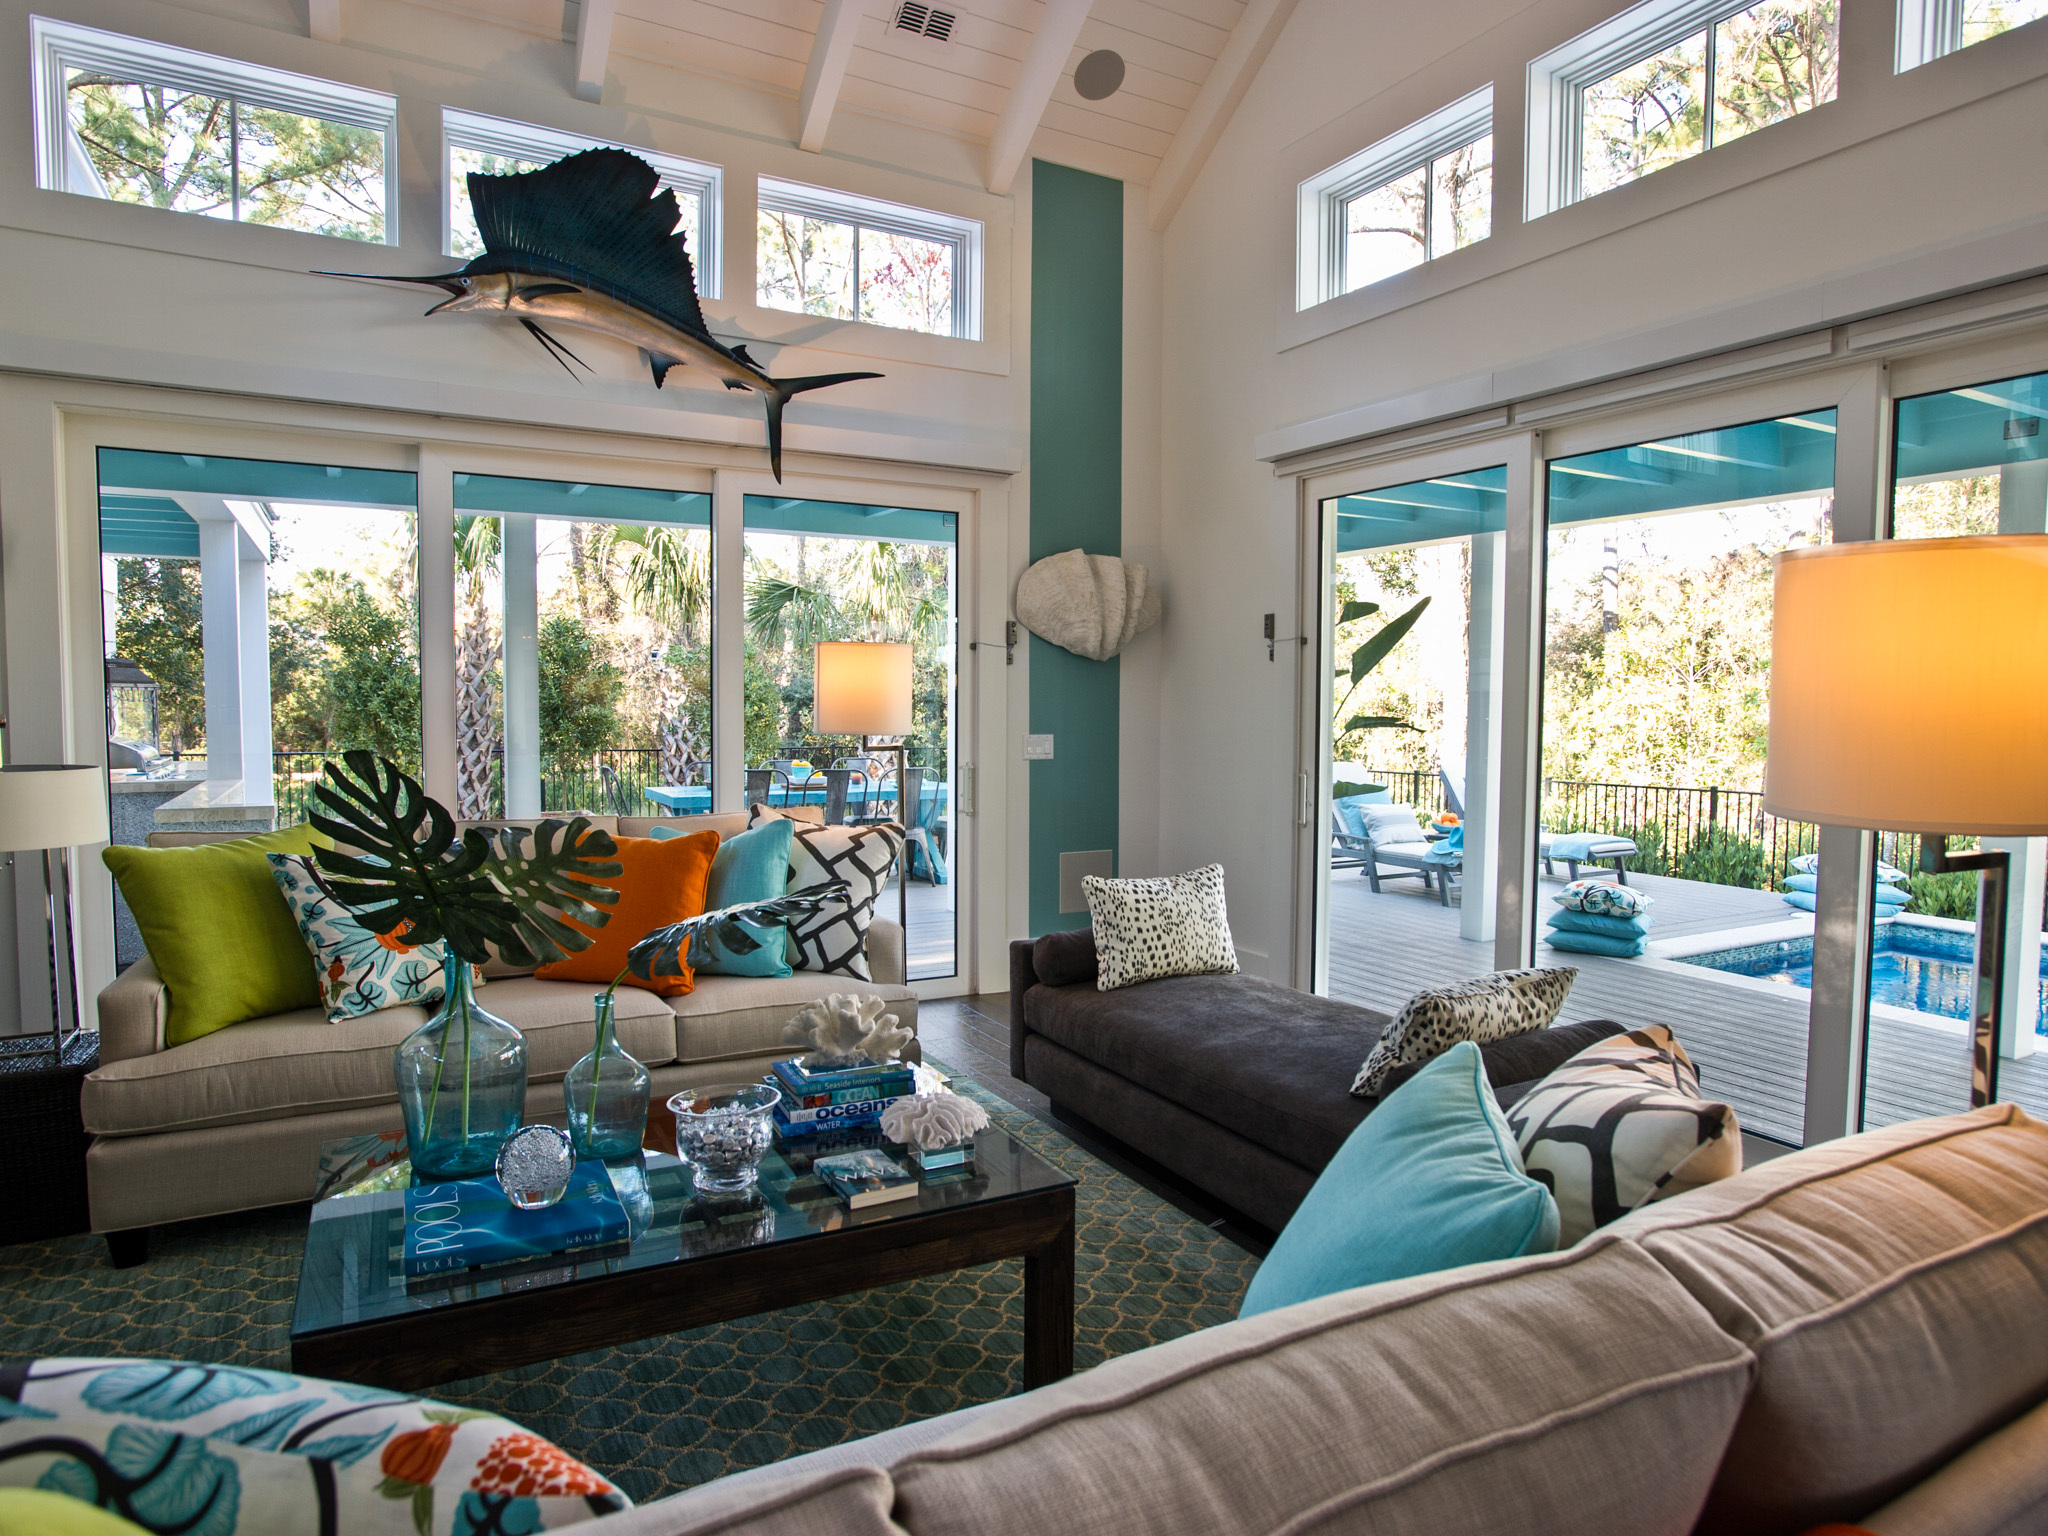 A combined-use great room boasts 12-foot ceilings and opens out to 1,000 square feet of patios, decks and water features. HGTV, HGTV Smart Home, and HGTV Smart Home Giveaway are trademarks of Scripps Networks, LLC. Used with permission; all rights reserved. Photo(c) 2013 Scripps Networks, LLC.